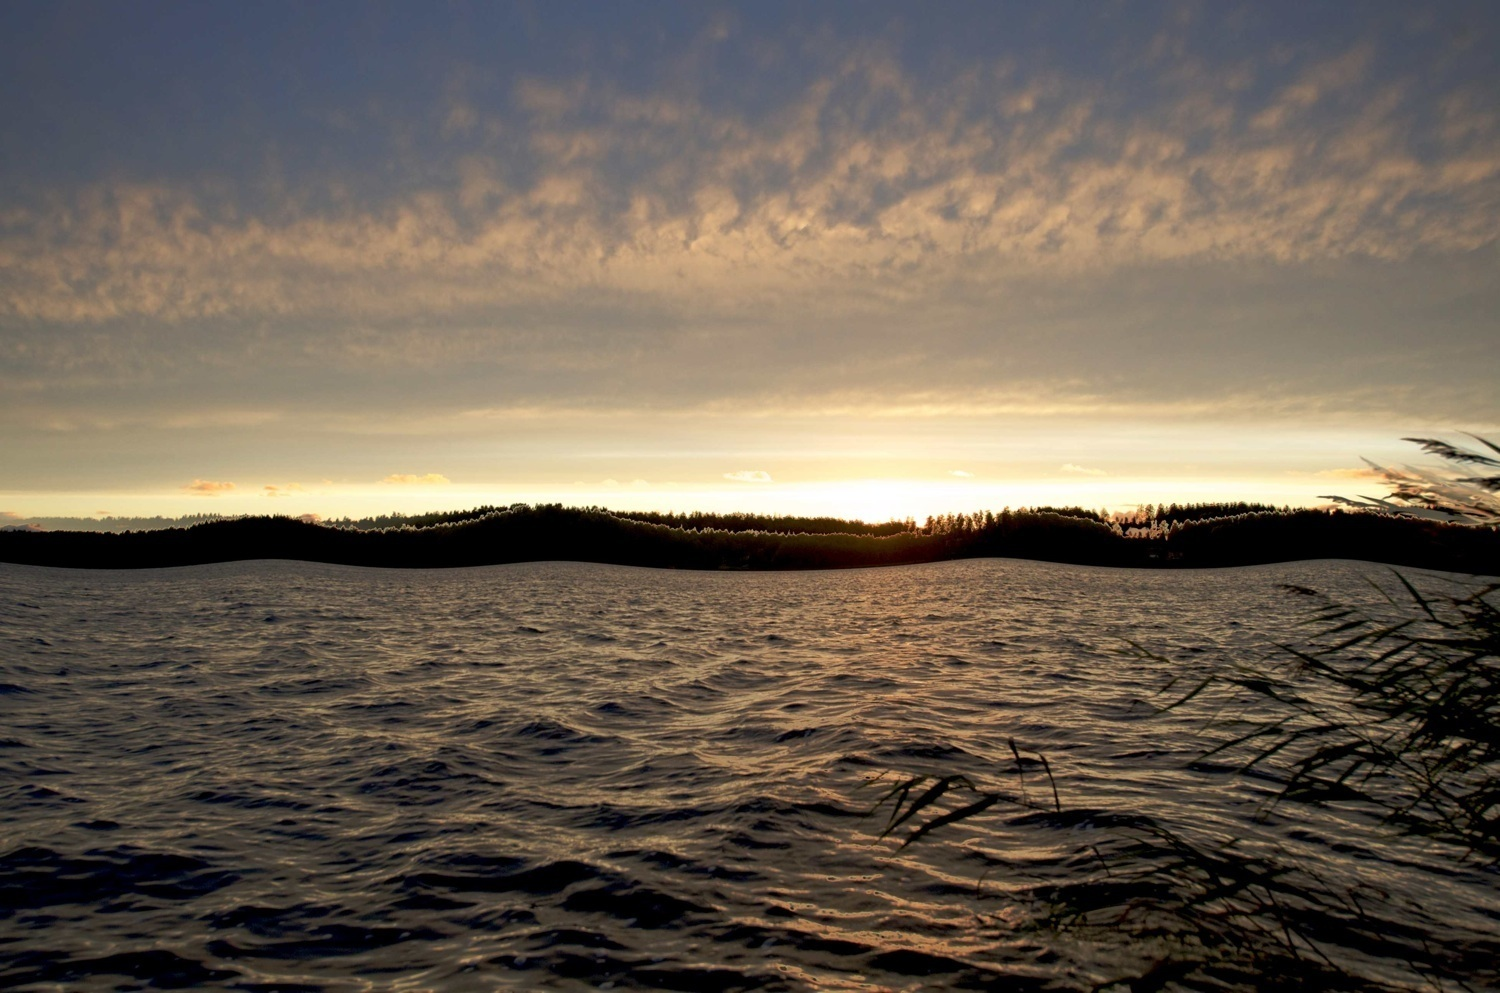 wind and waves at sunset author soini hannu